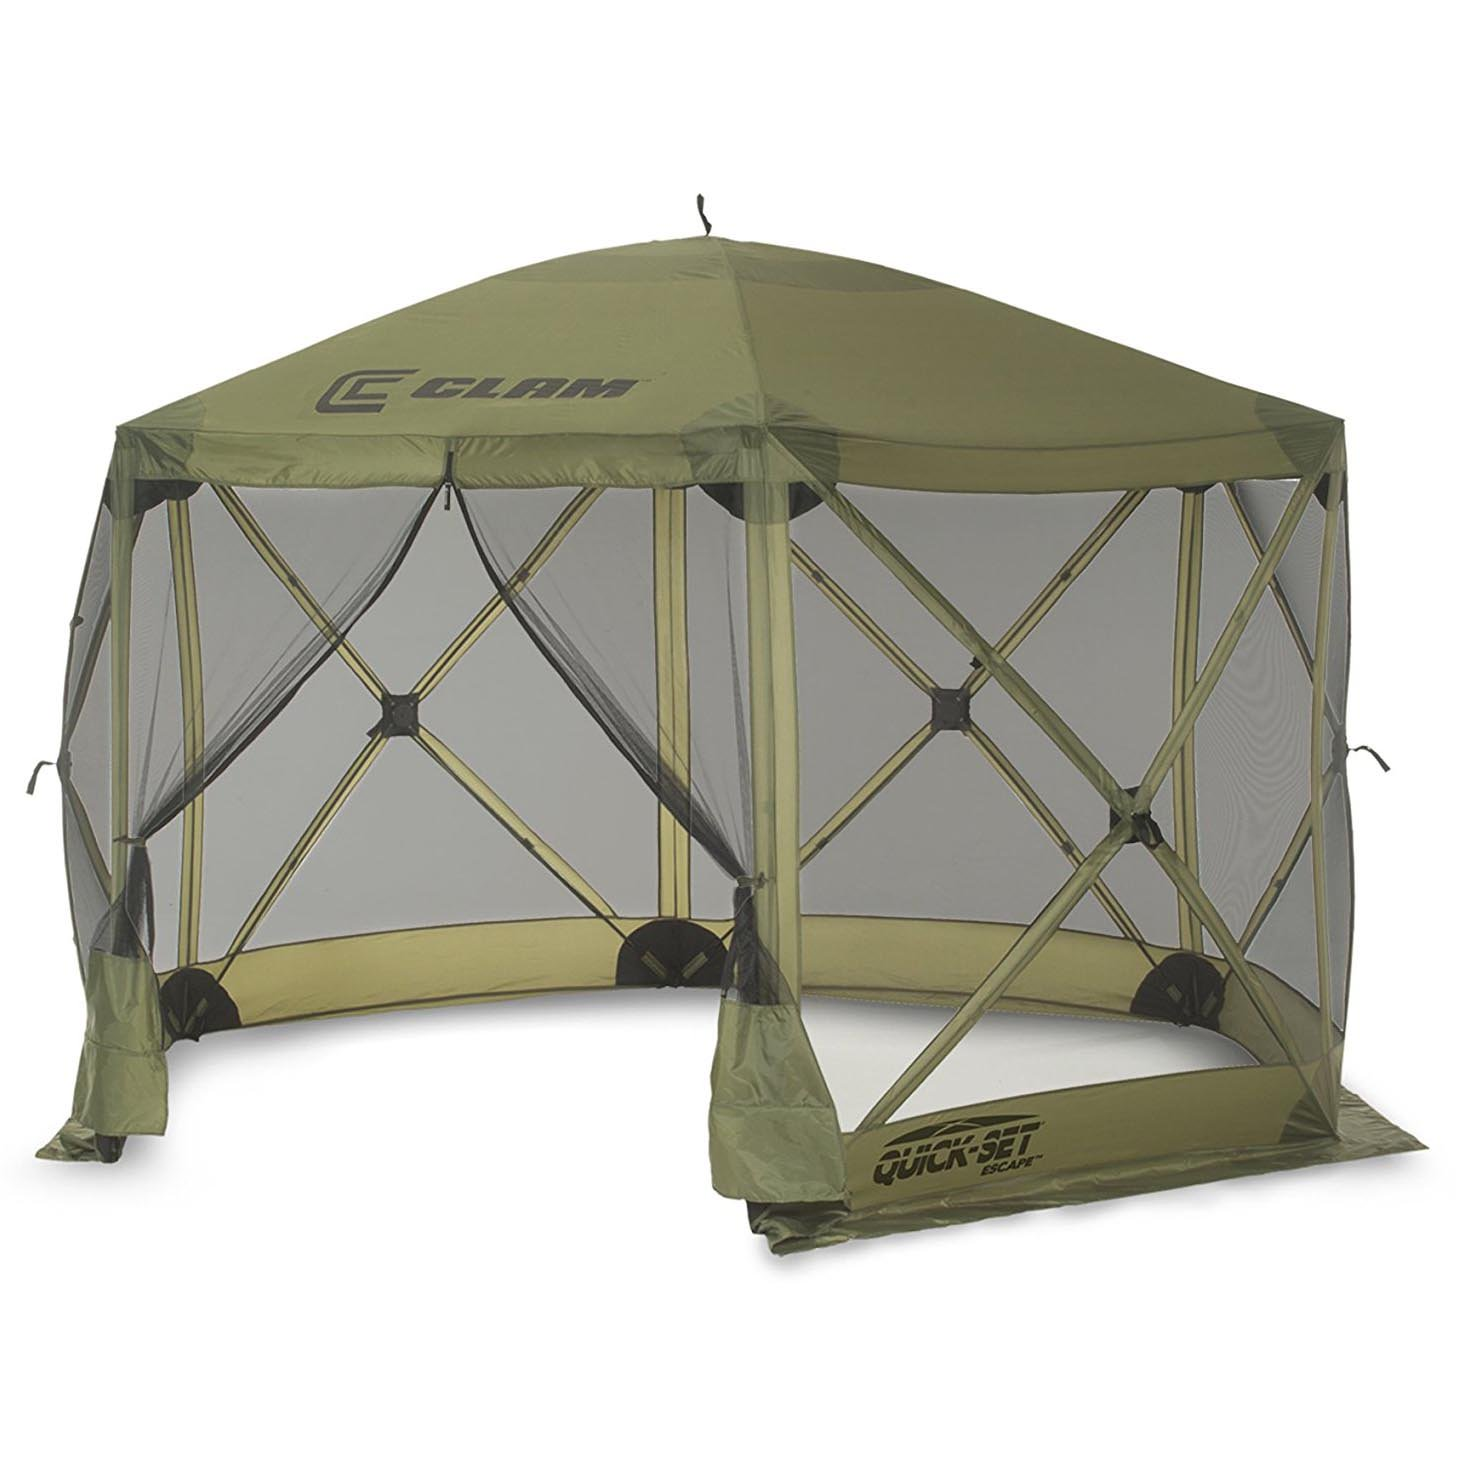 Clam Quick Set Escape Portable Camping Outdoor Gazebo Canopy Shelter Screen